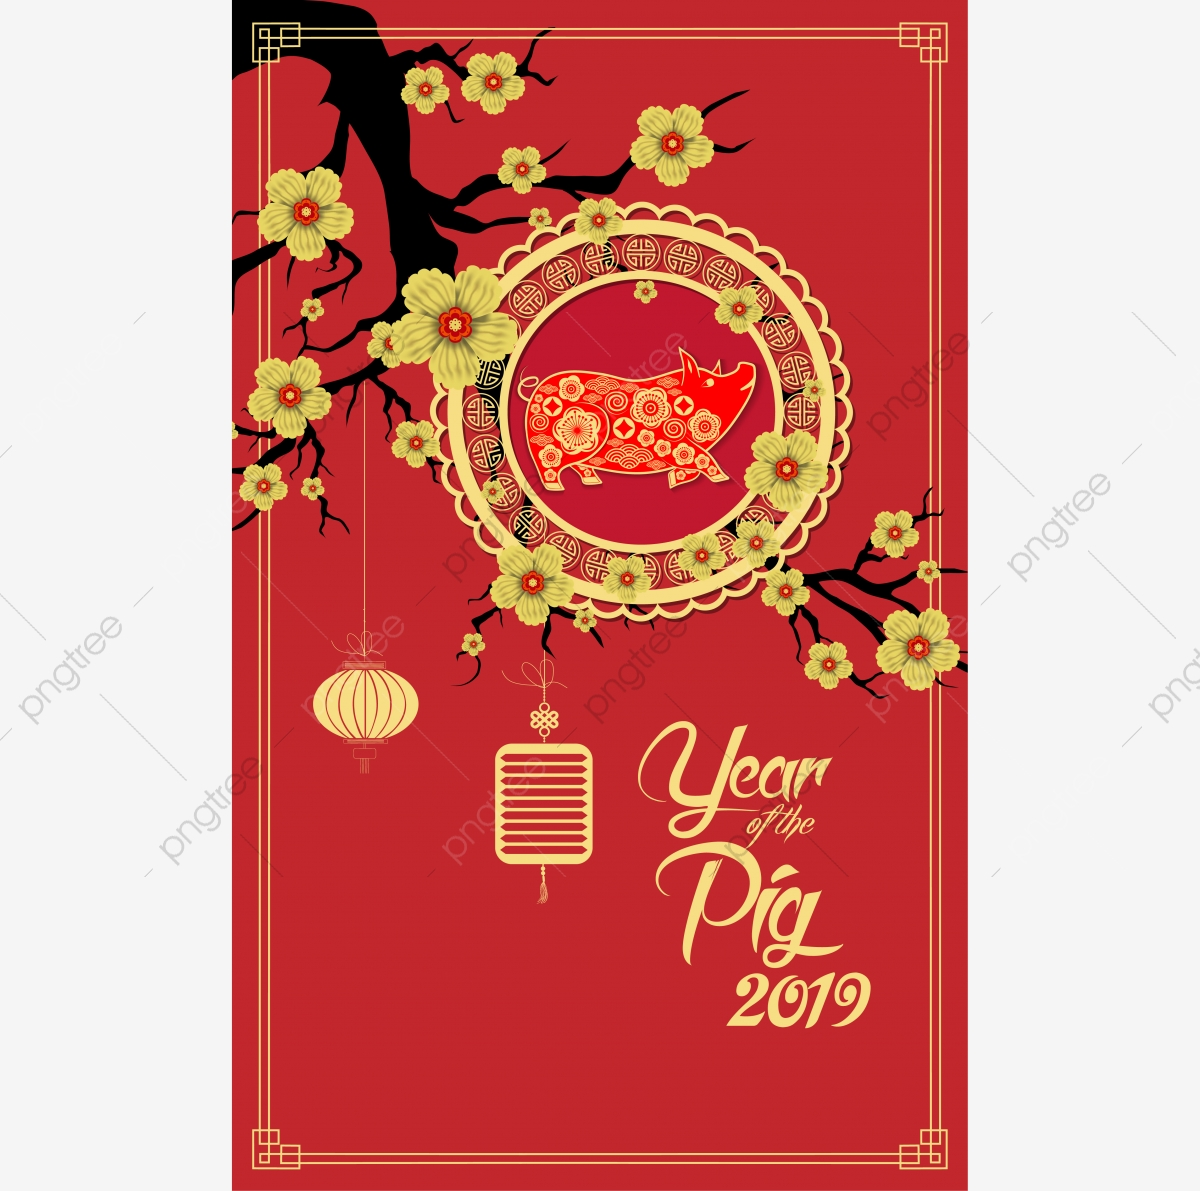 Free clipart for chinese new year 2019. Happy of the pig